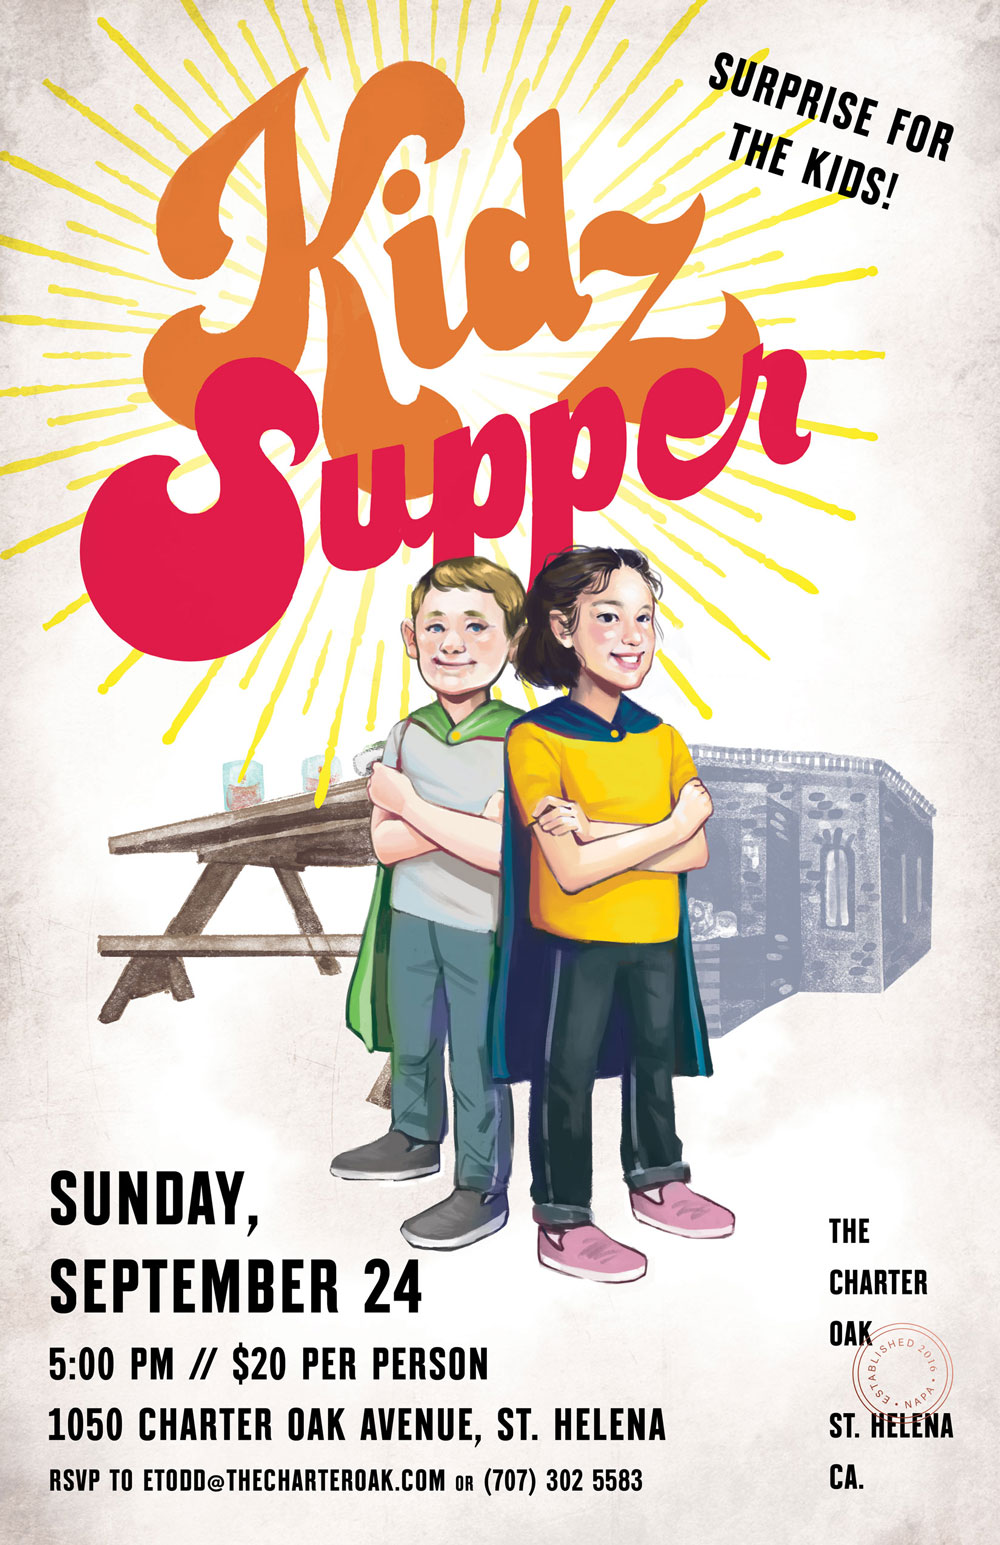 The Charter Oak Kidz Supper